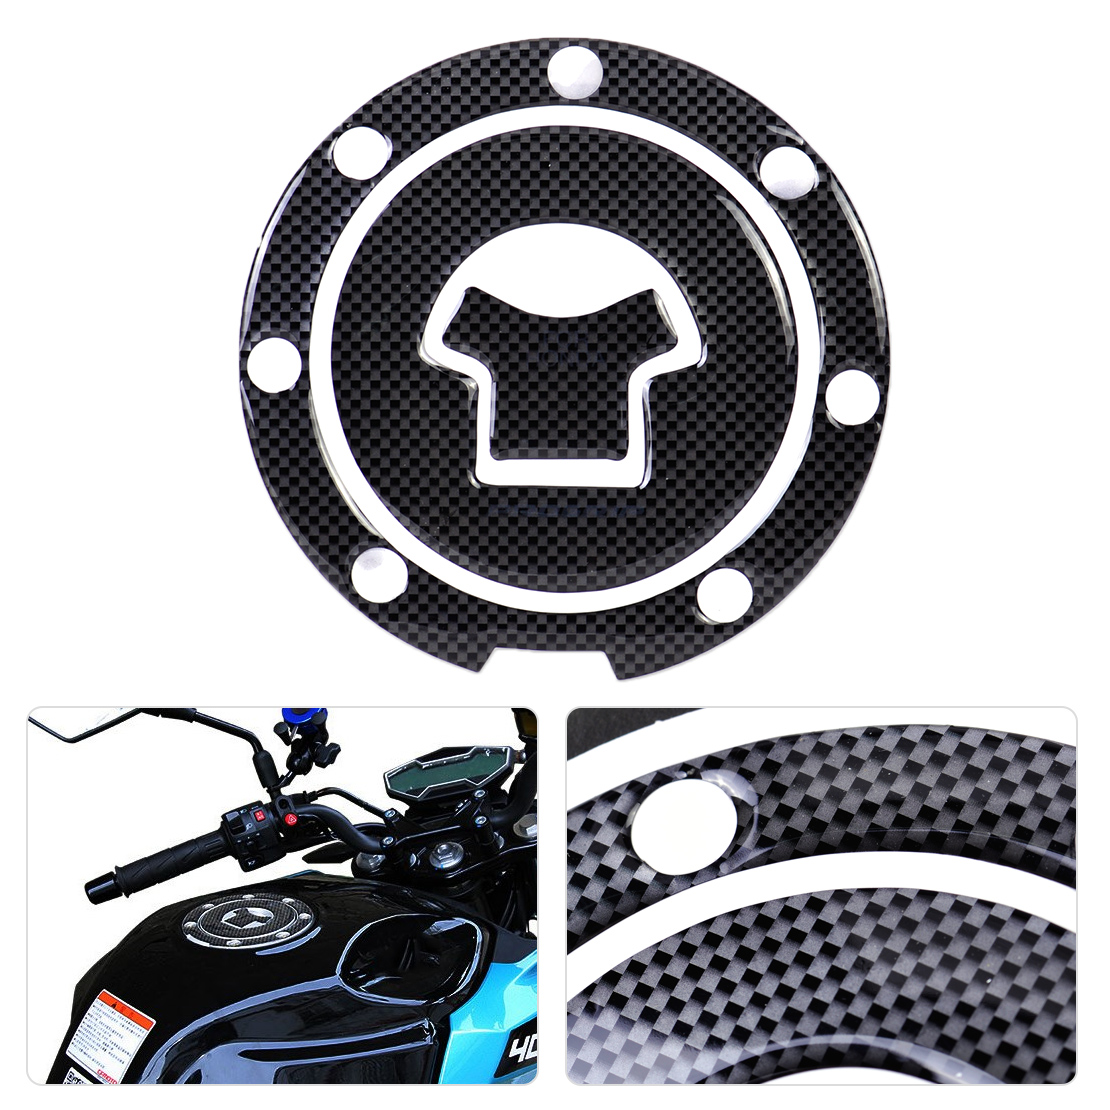 Bike sticker design online - New Black Motorcycle Sticker Fuel Gas Cap Tank Cover Pad Sticker Decal Protector Fit For Honda